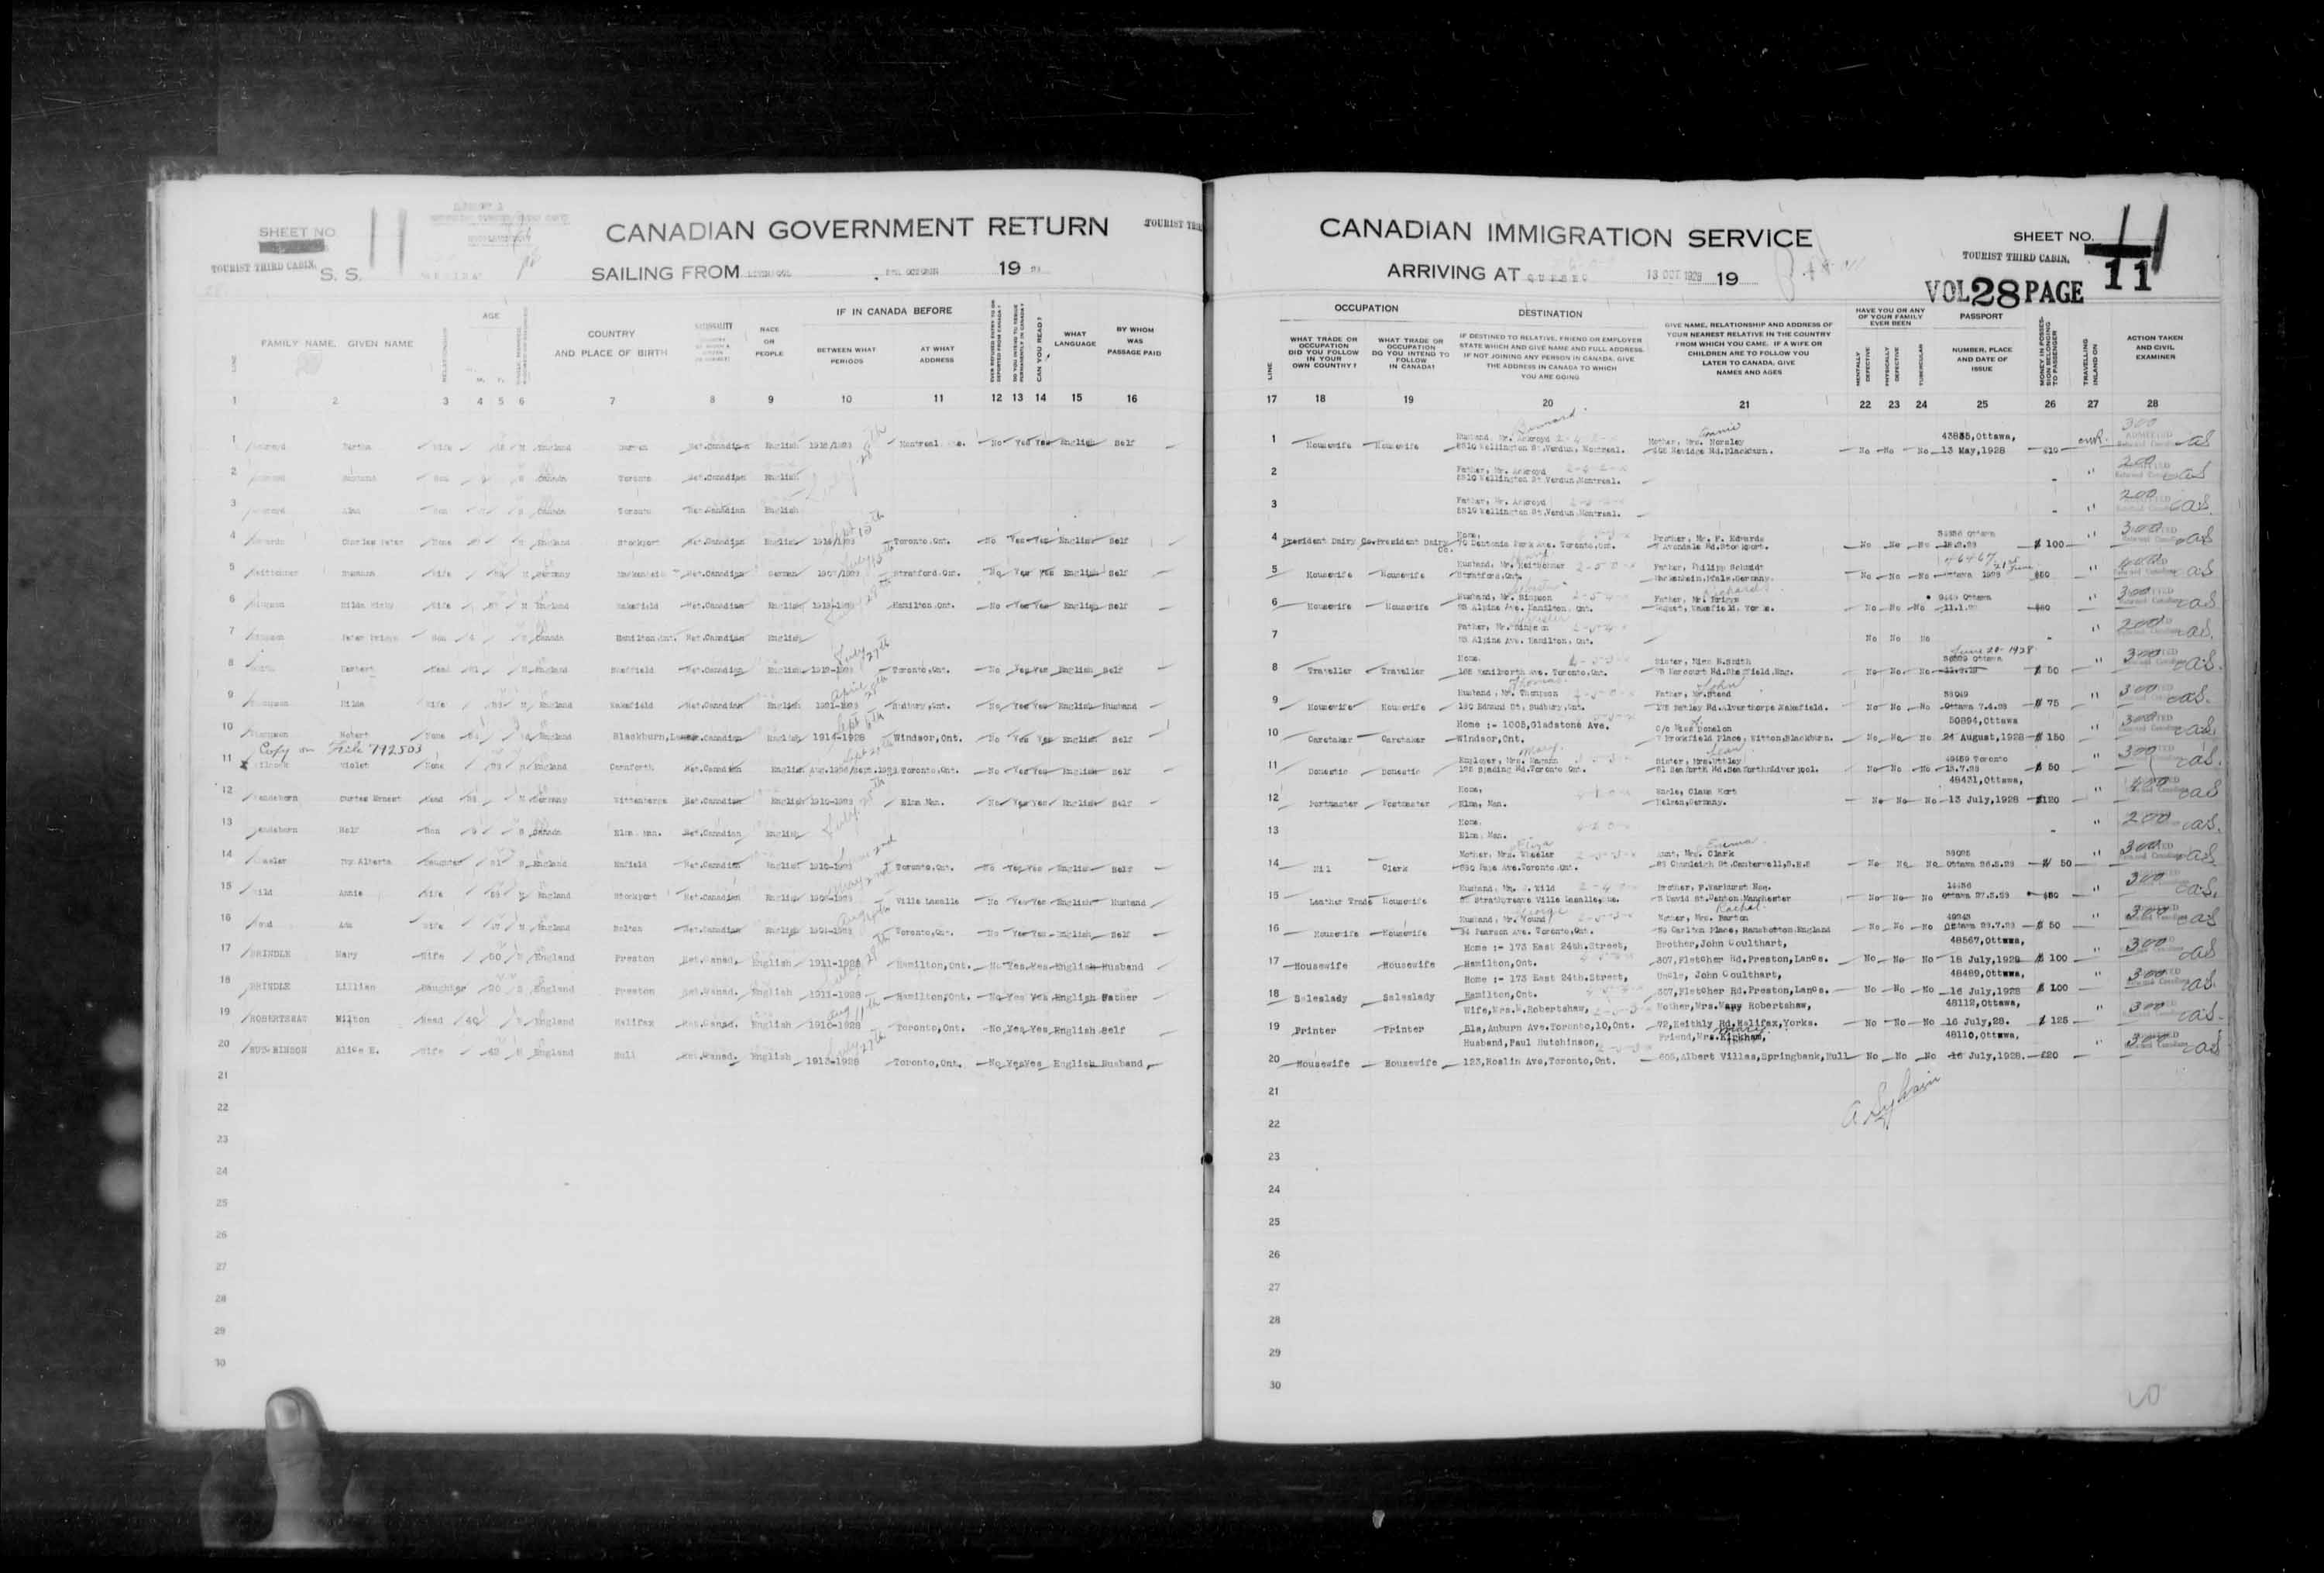 Title: Passenger Lists: Quebec City (1925-1935) - Mikan Number: 134839 - Microform: t-14749